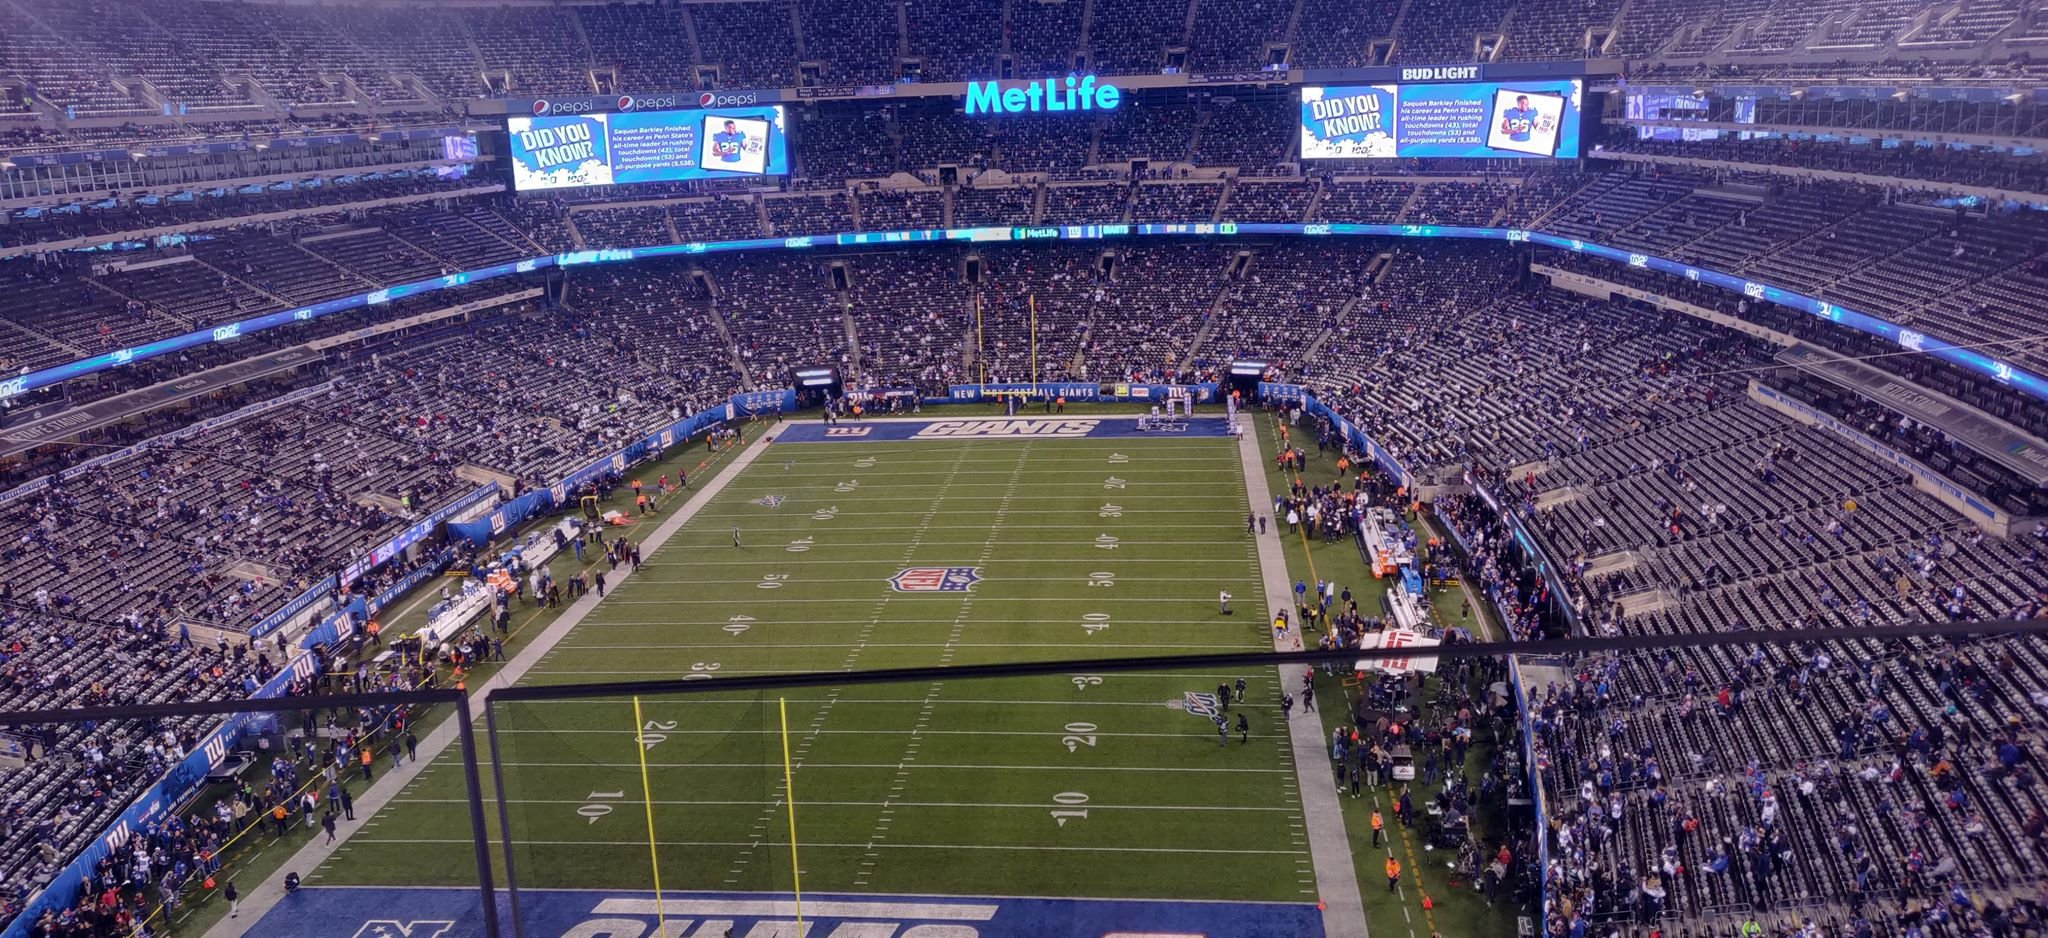 fieldmetlife